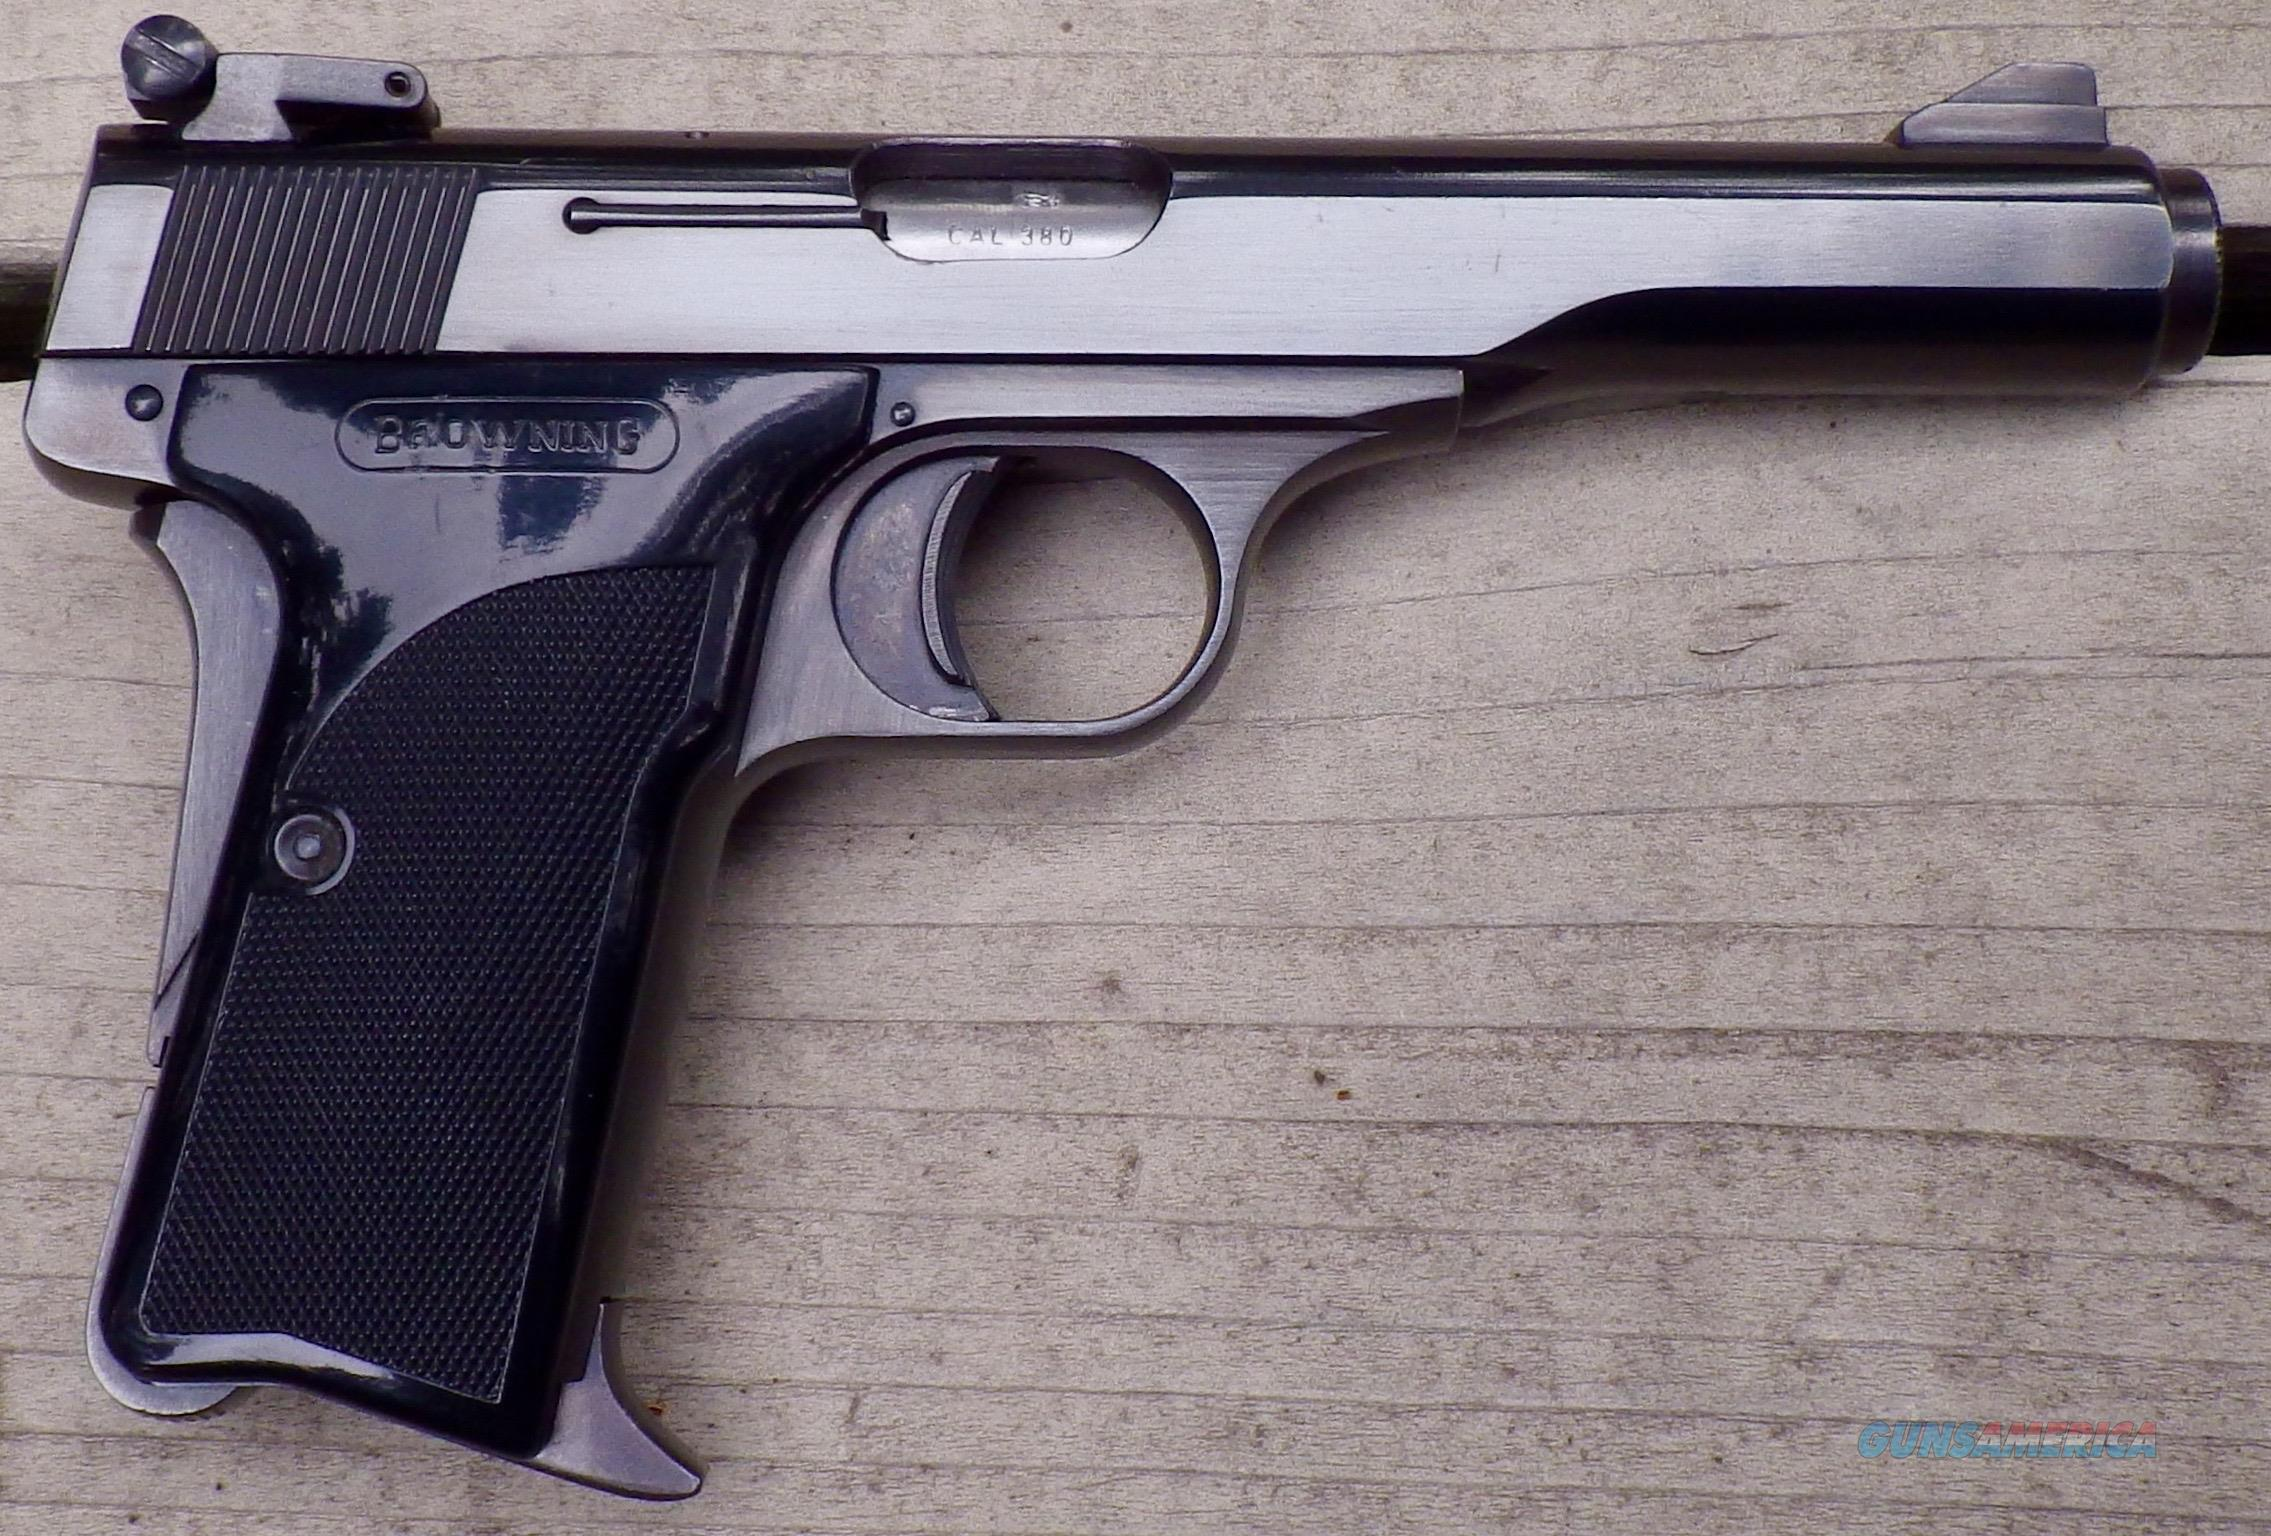 Browning Model 10/71 .380 ACP, adjustable sight, 98% condition  Guns > Pistols > Browning Pistols > Other Autos